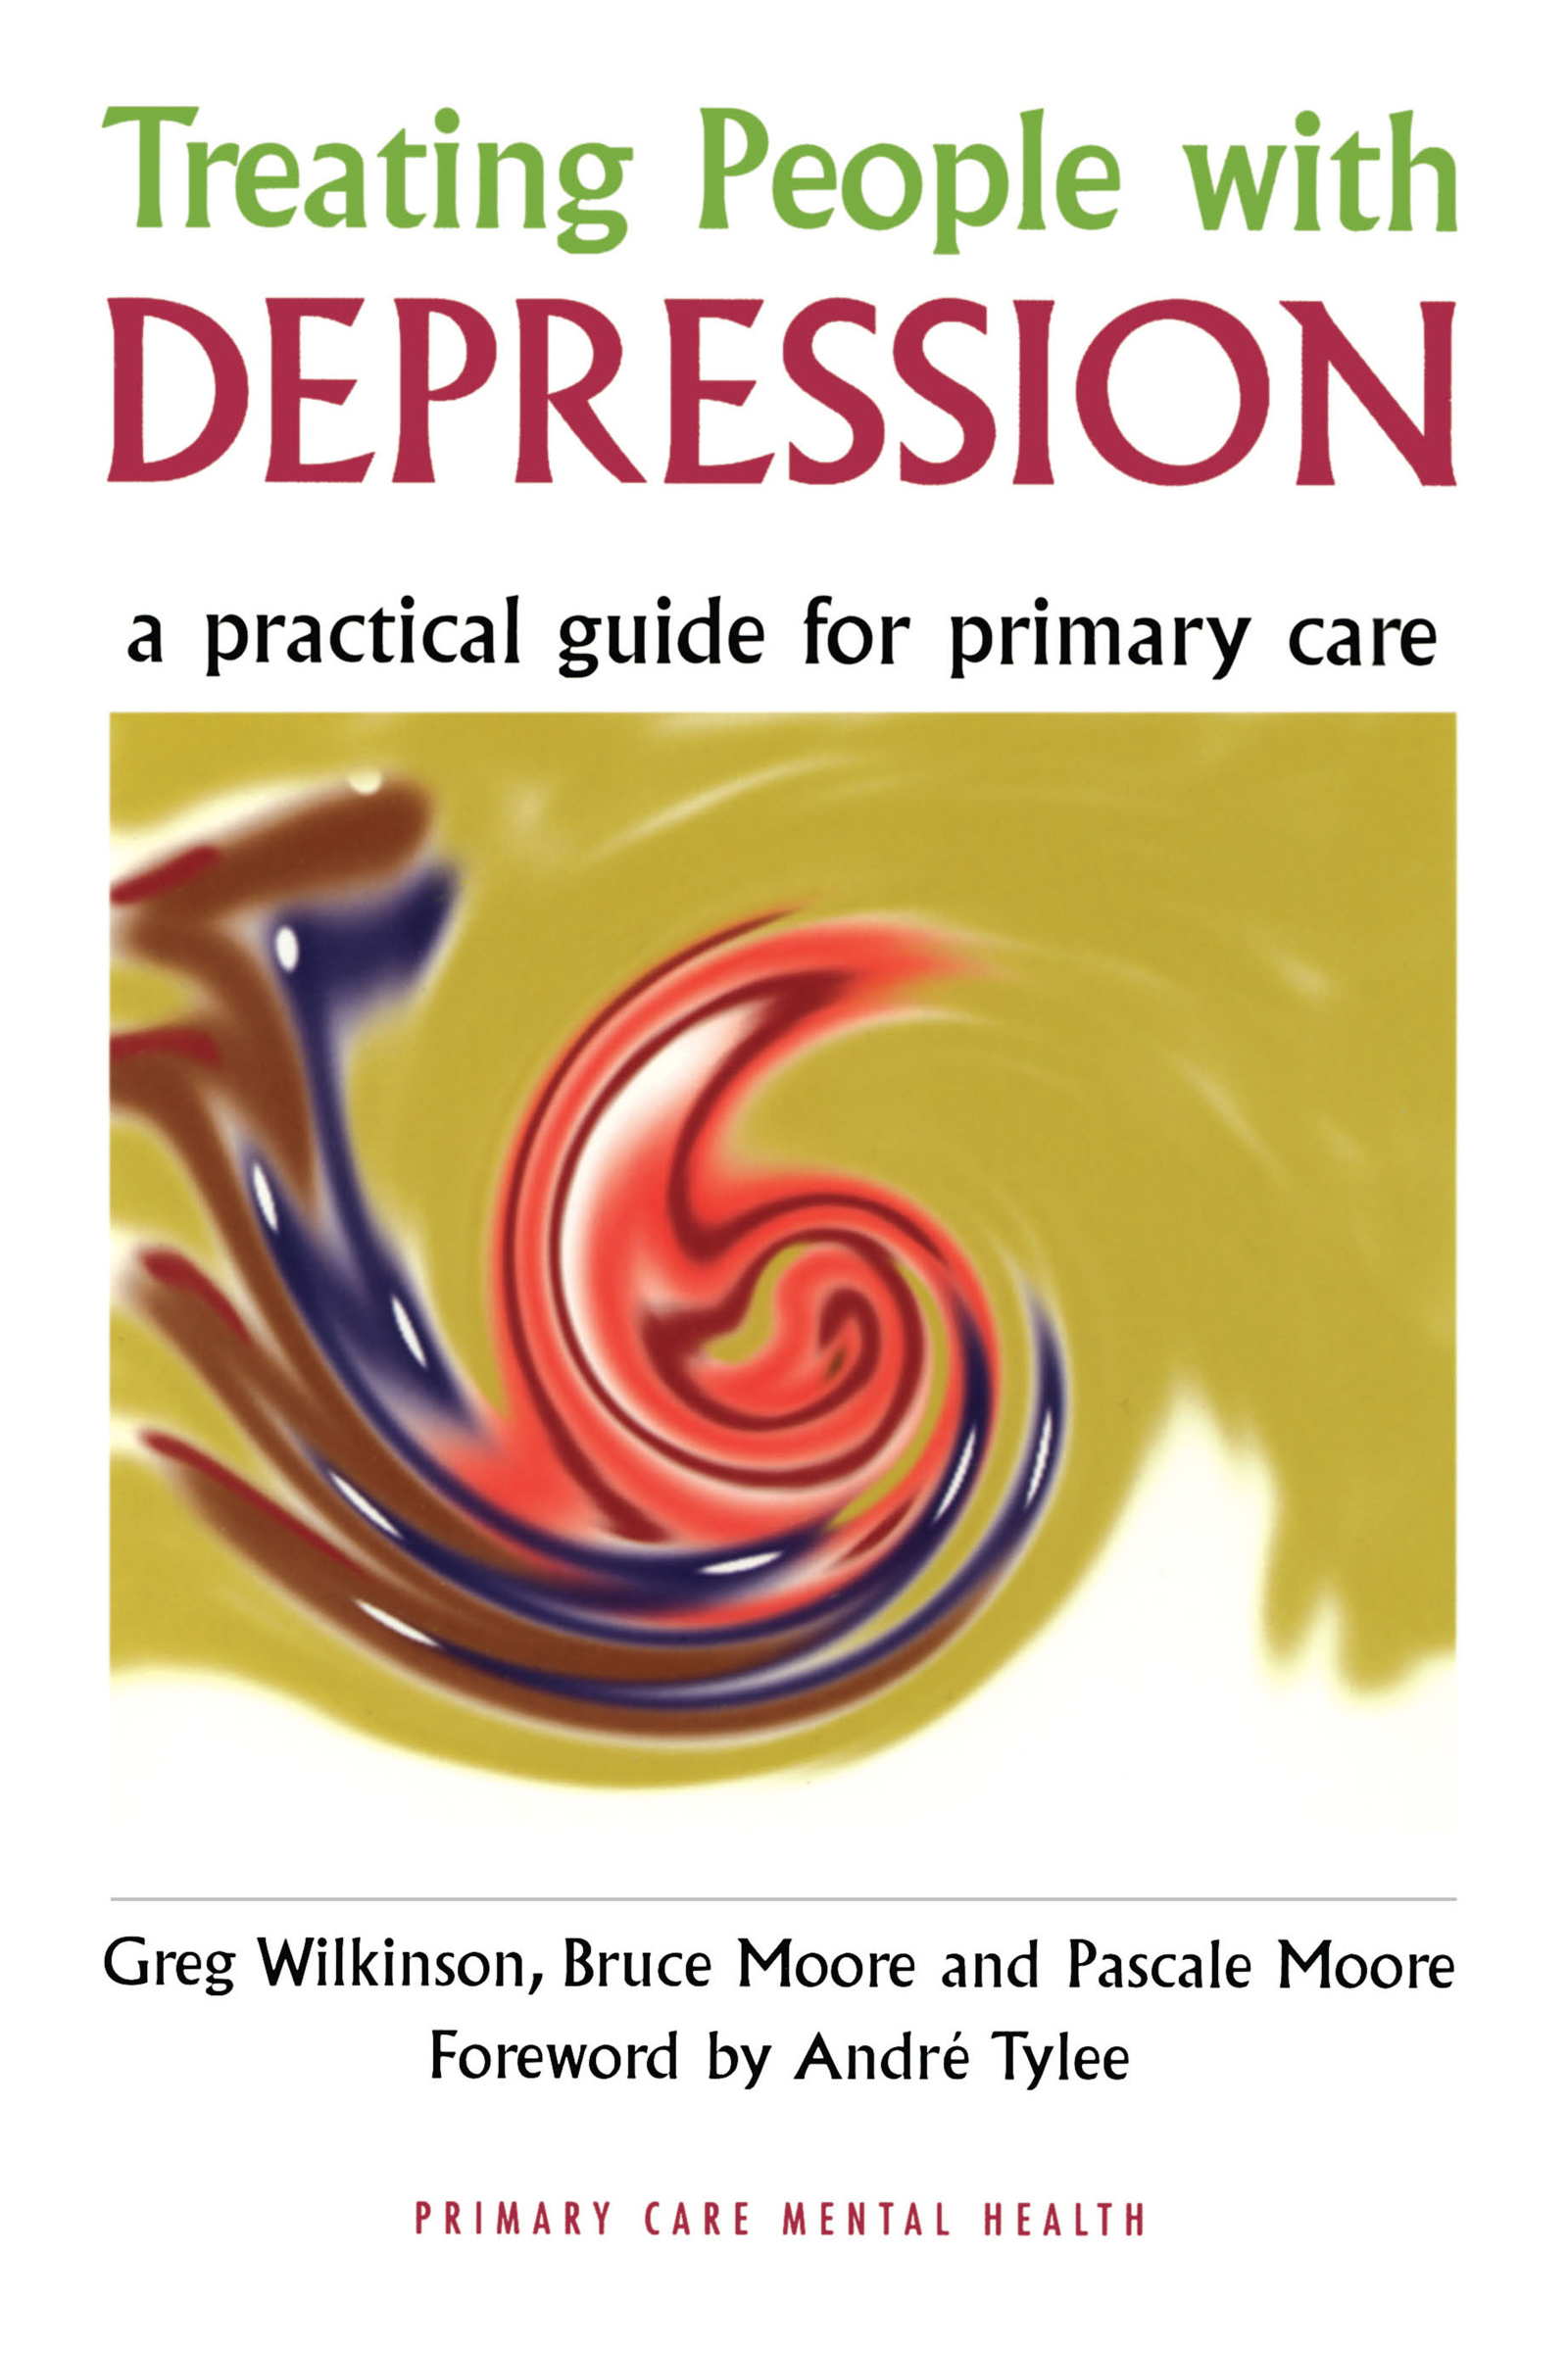 Treating People with Depression